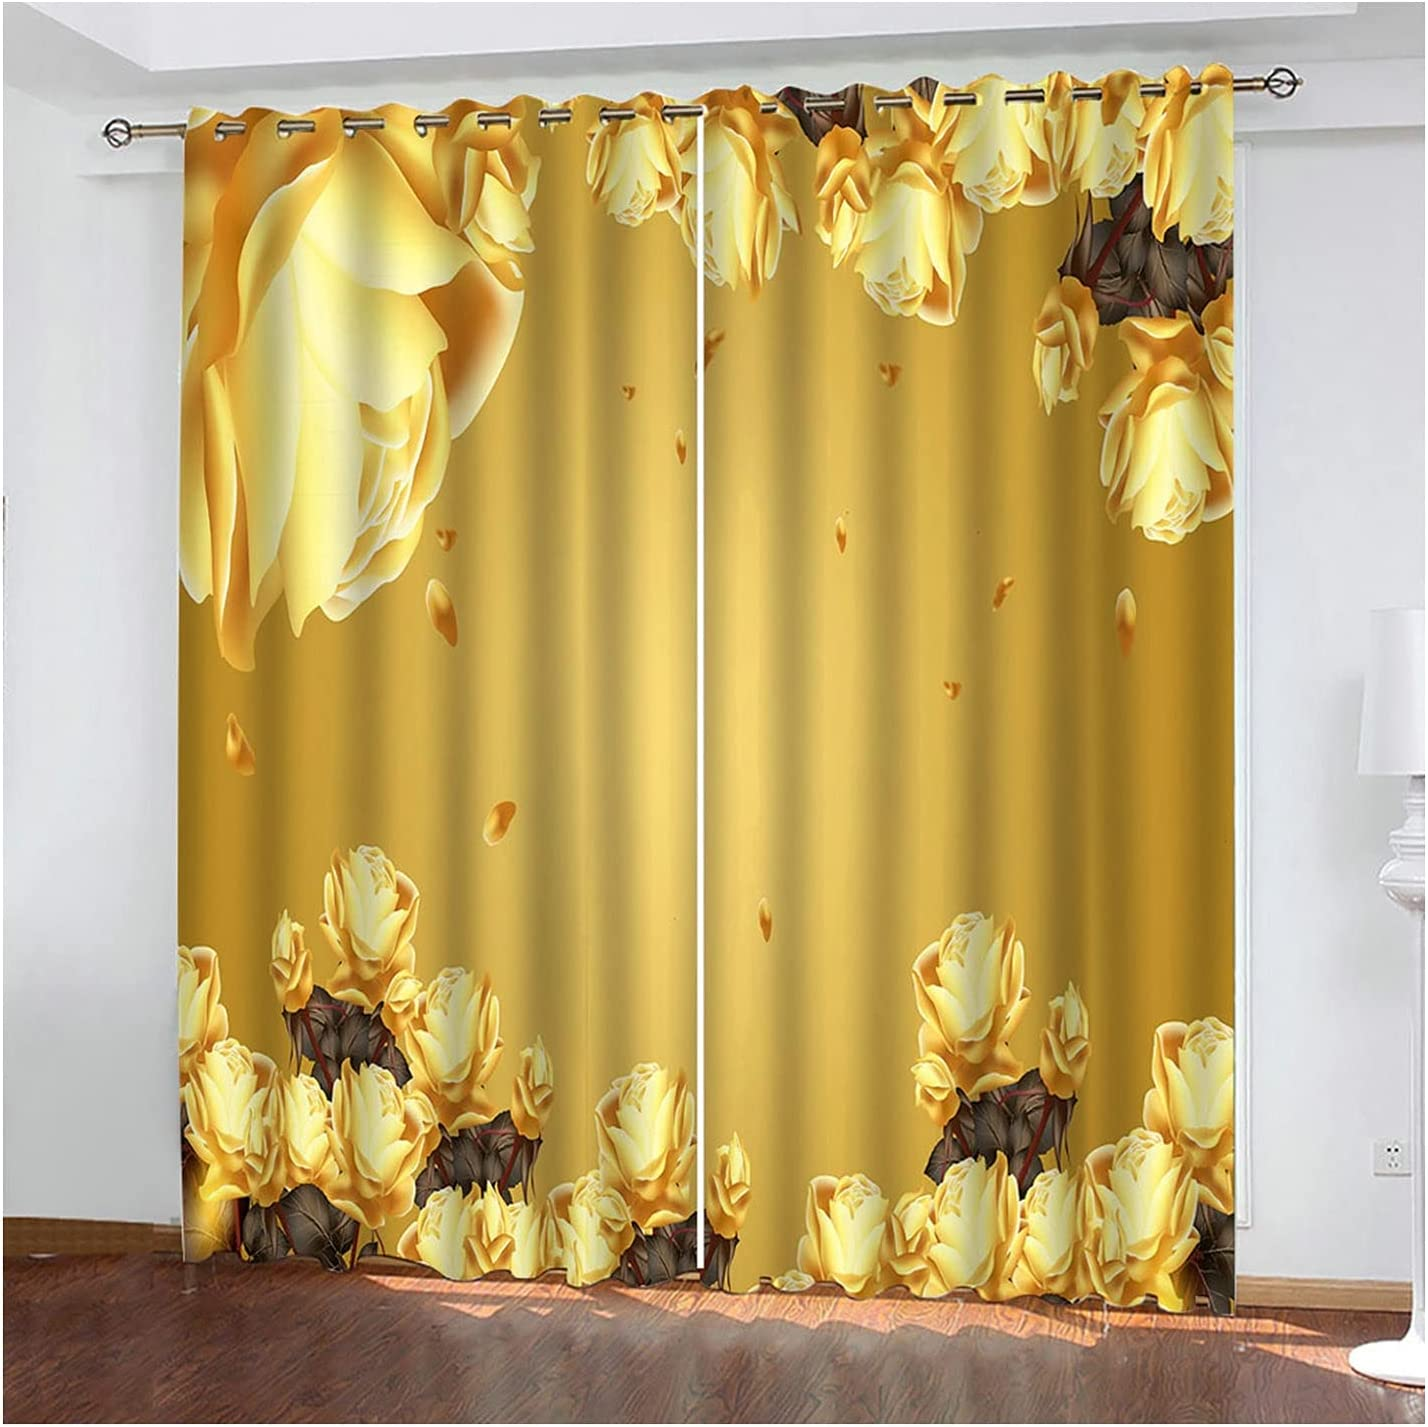 Adisaer Boston Mall Champagne Kitchen Curtains Polyester Rose Flower 2021 spring and summer new Blacko